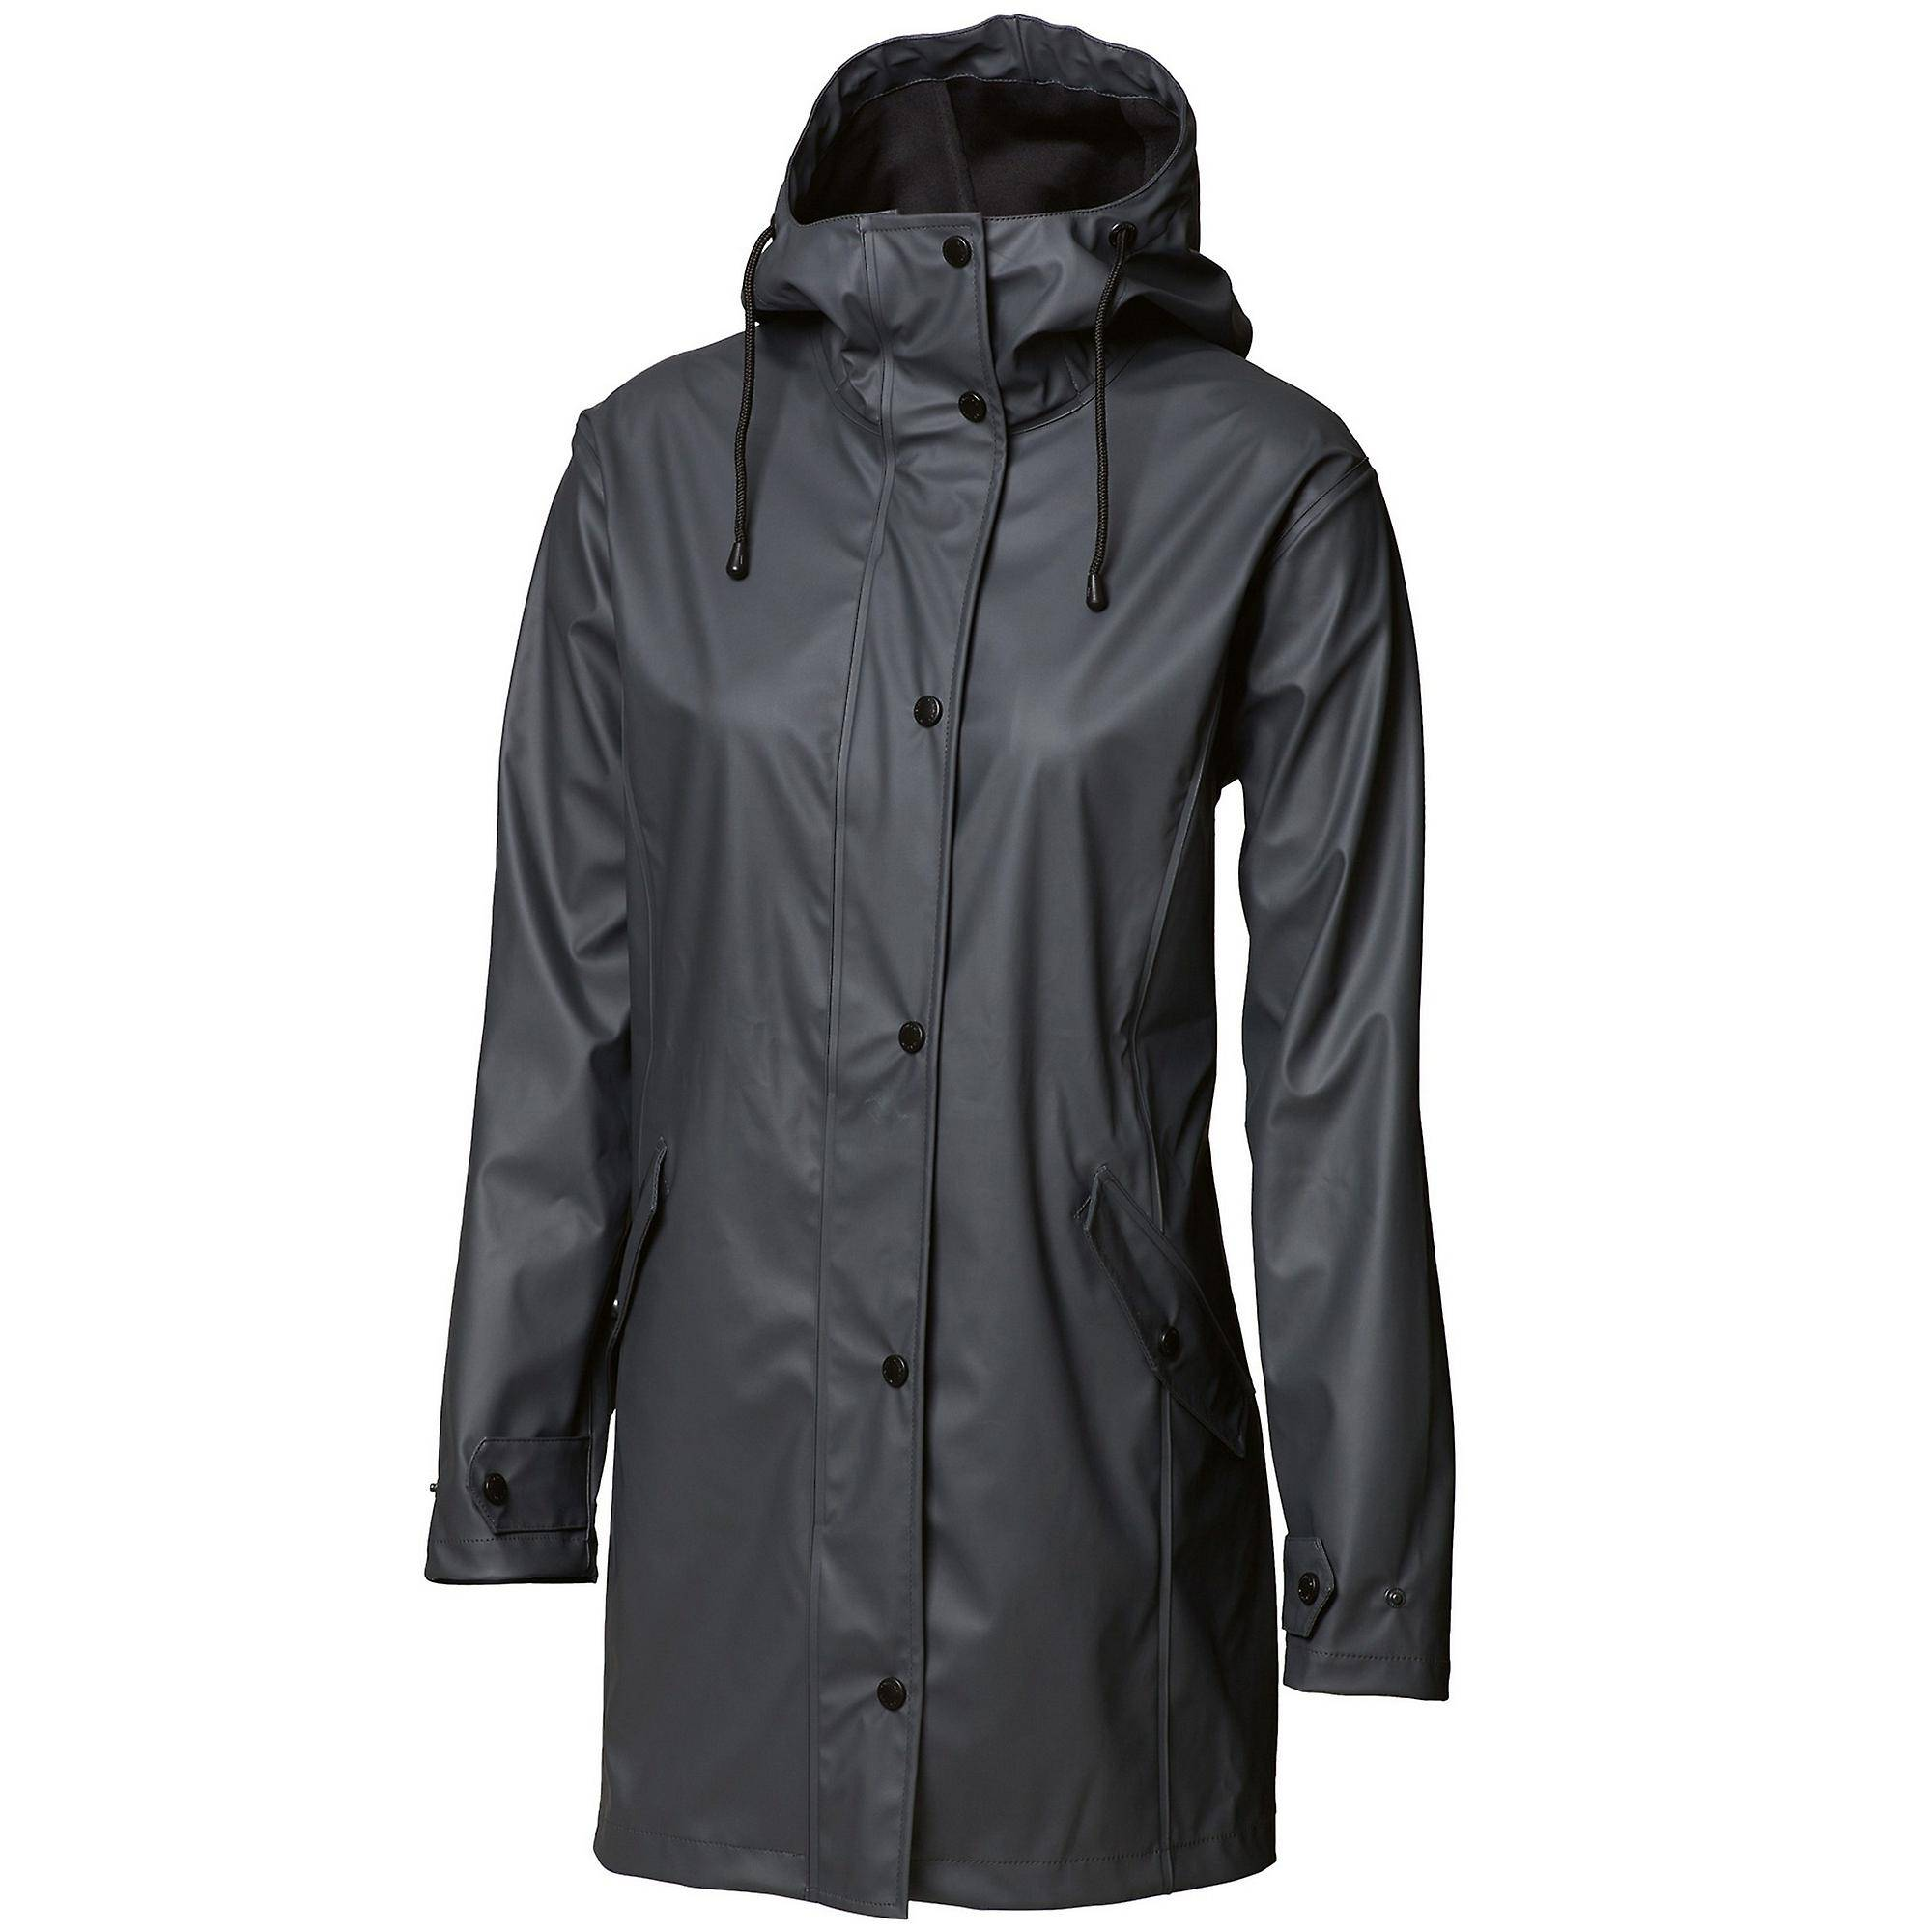 Nimbus Womens/dames Huntington mode imperméable à capuchon imperméable